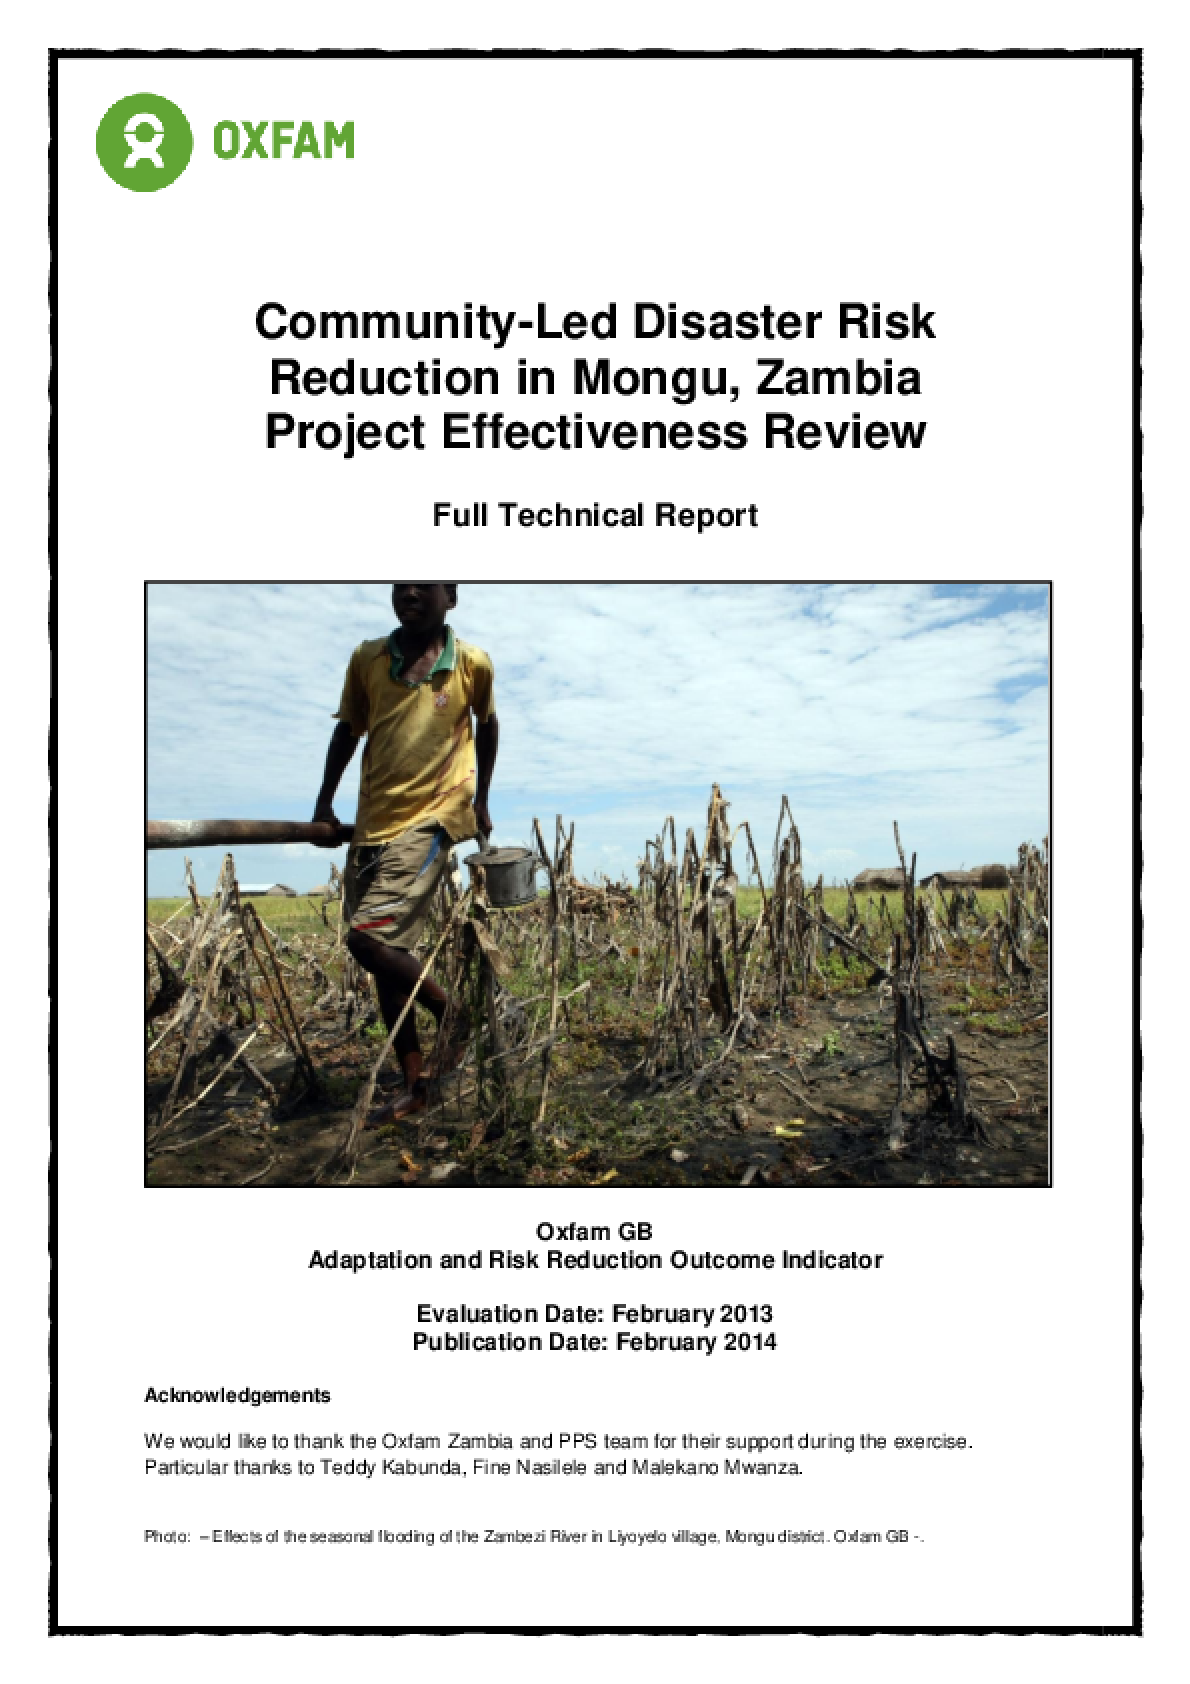 Effectiveness Review: Community-Led Disaster Risk Reduction in Mongu, Zambia